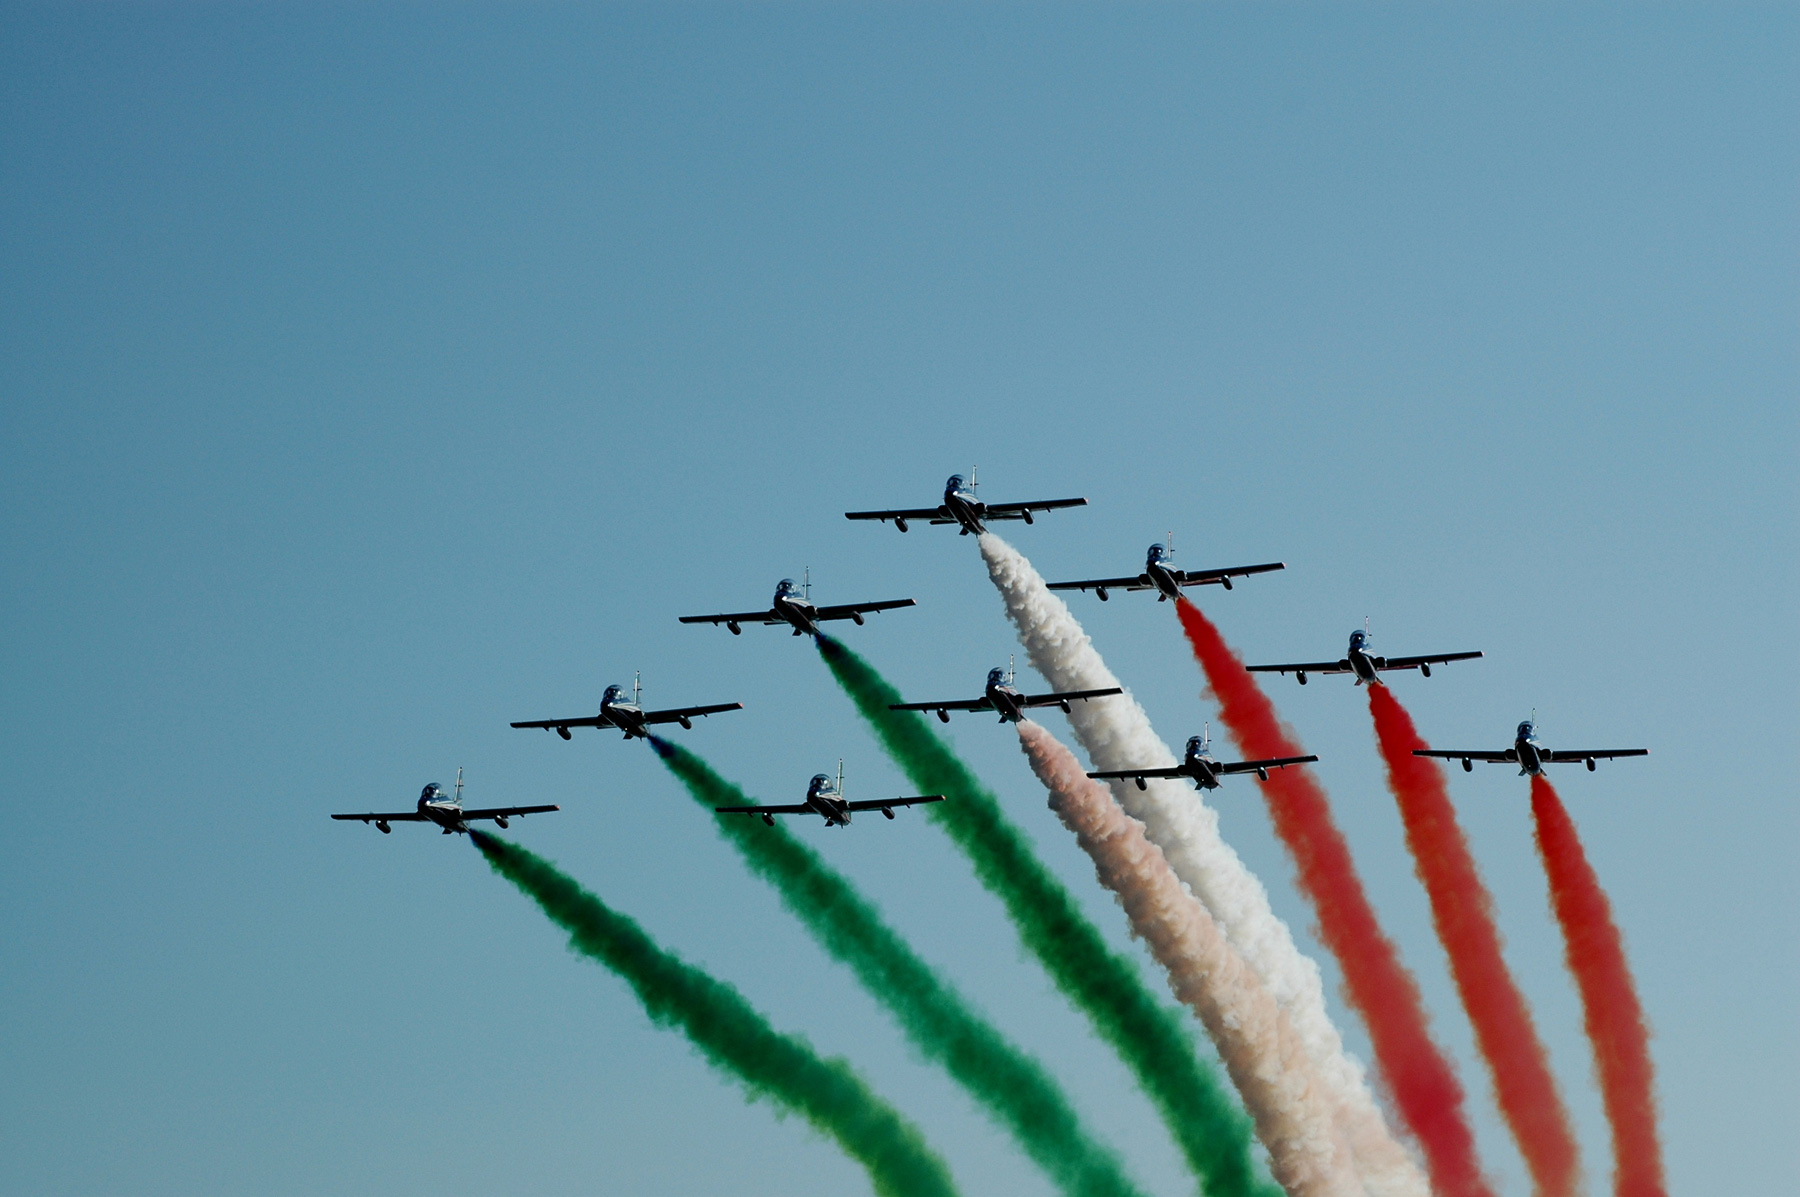 Flyby of planes in Rome